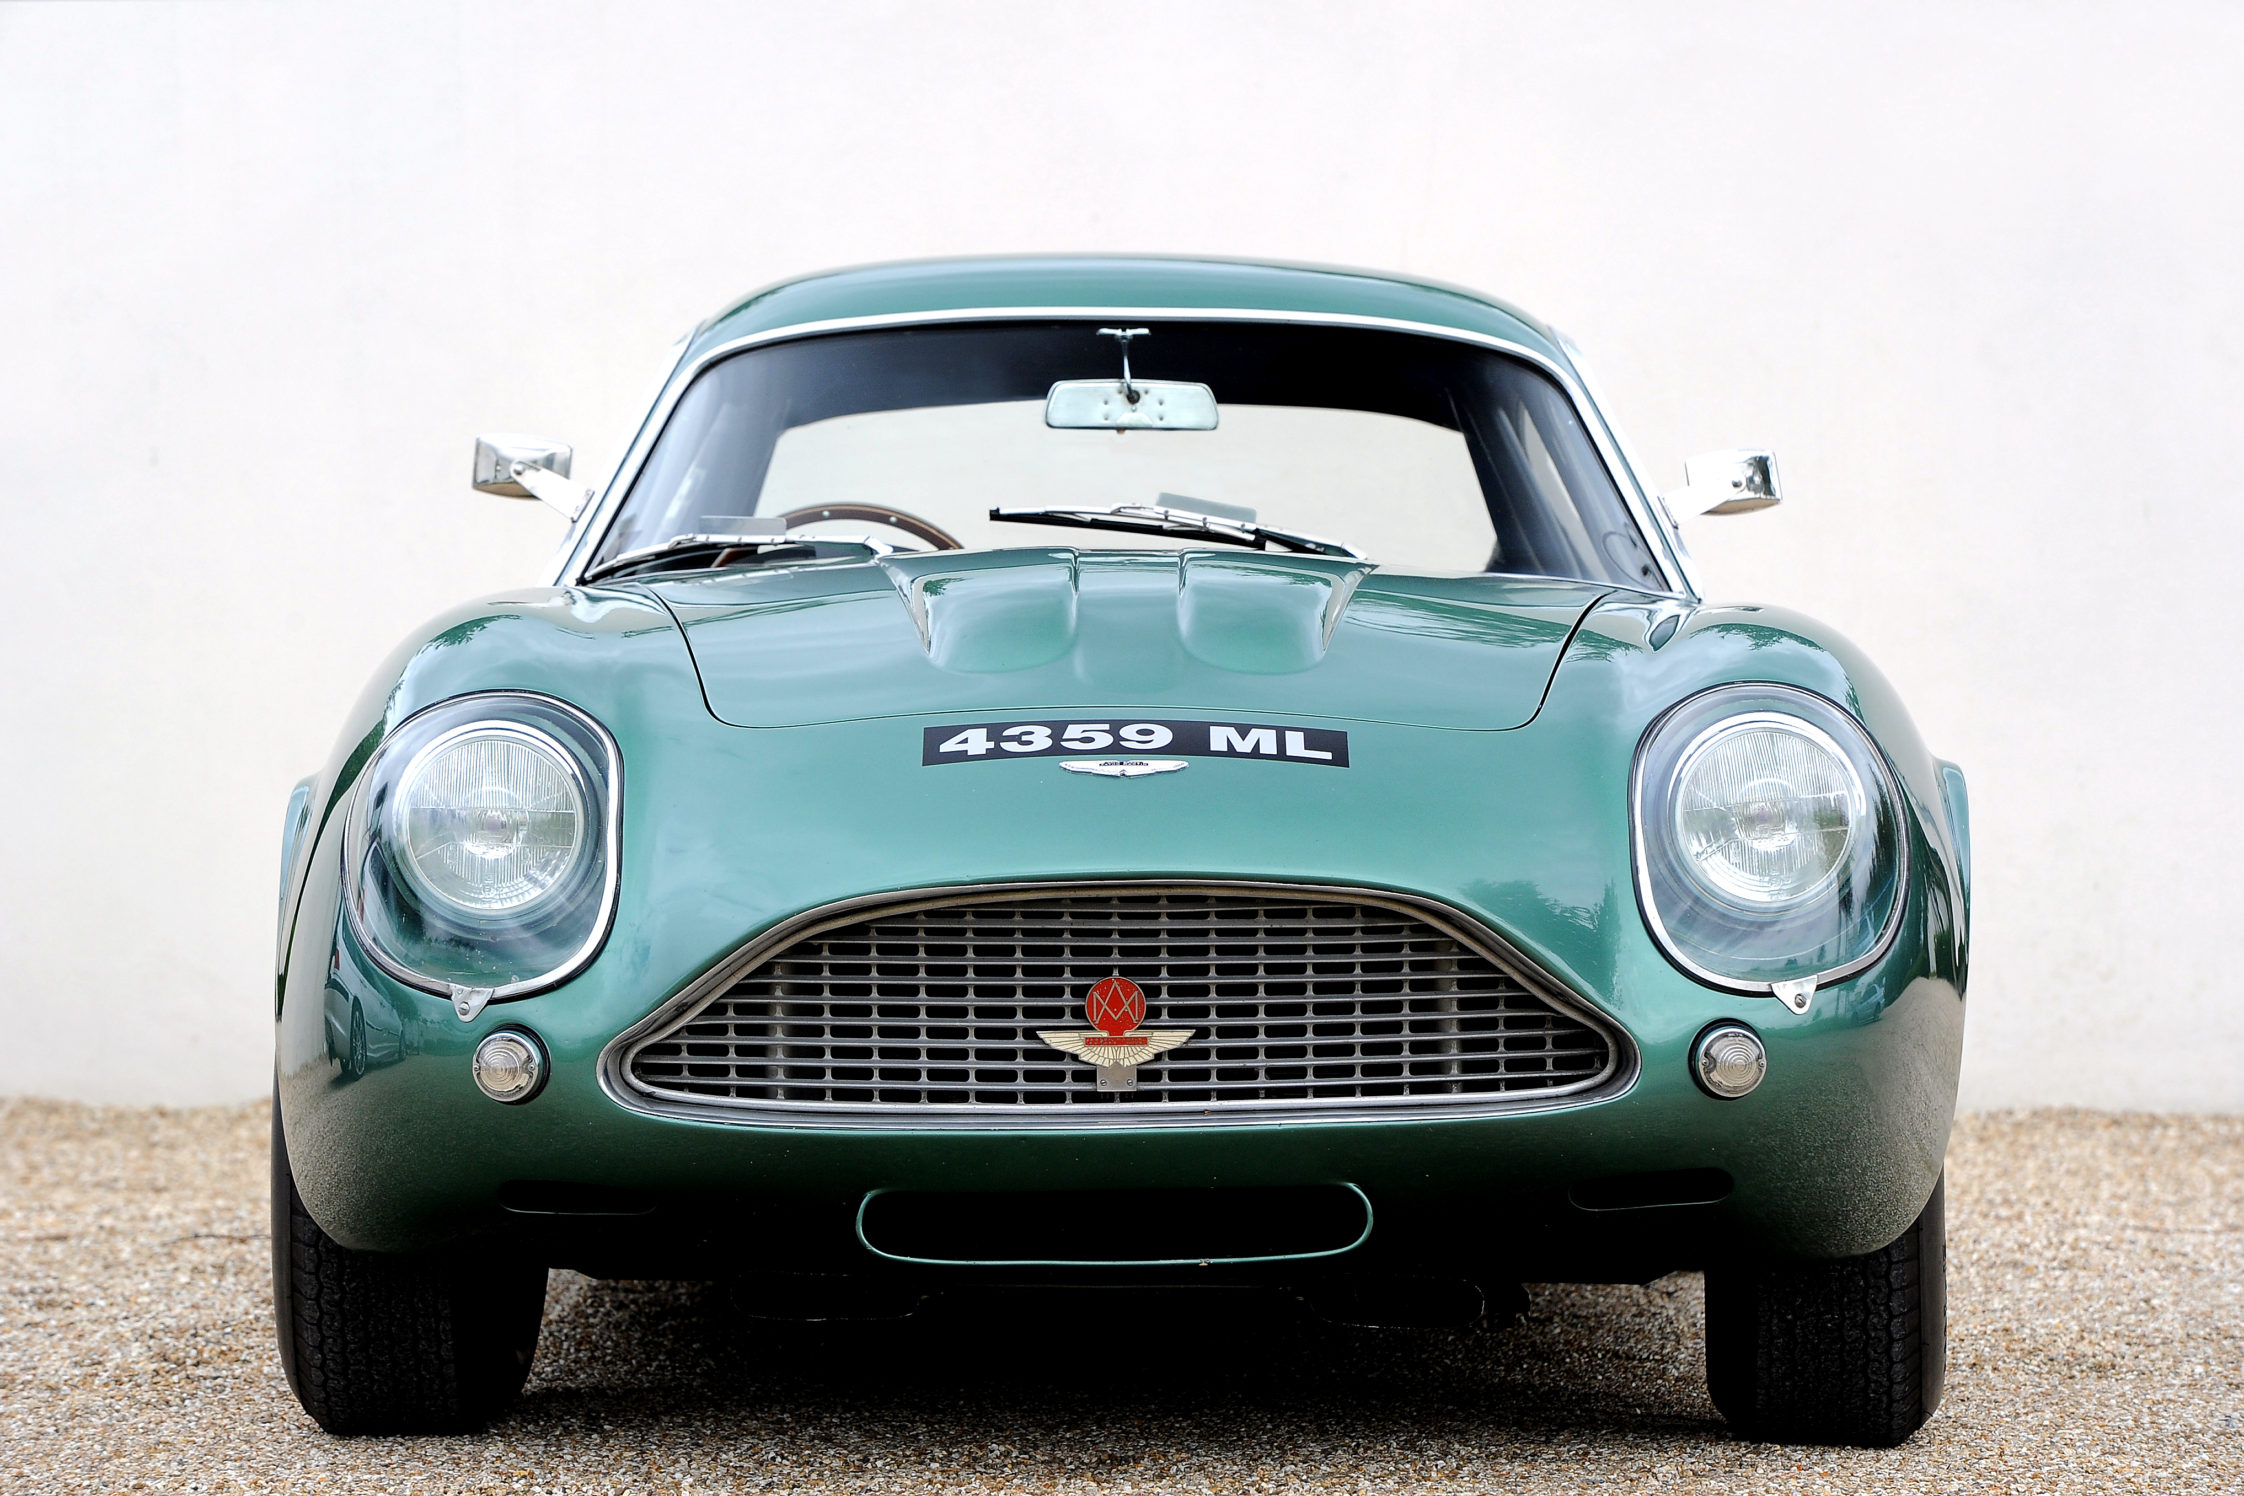 Concours of Elegance to Host World-First Aston Martin Zagato Display